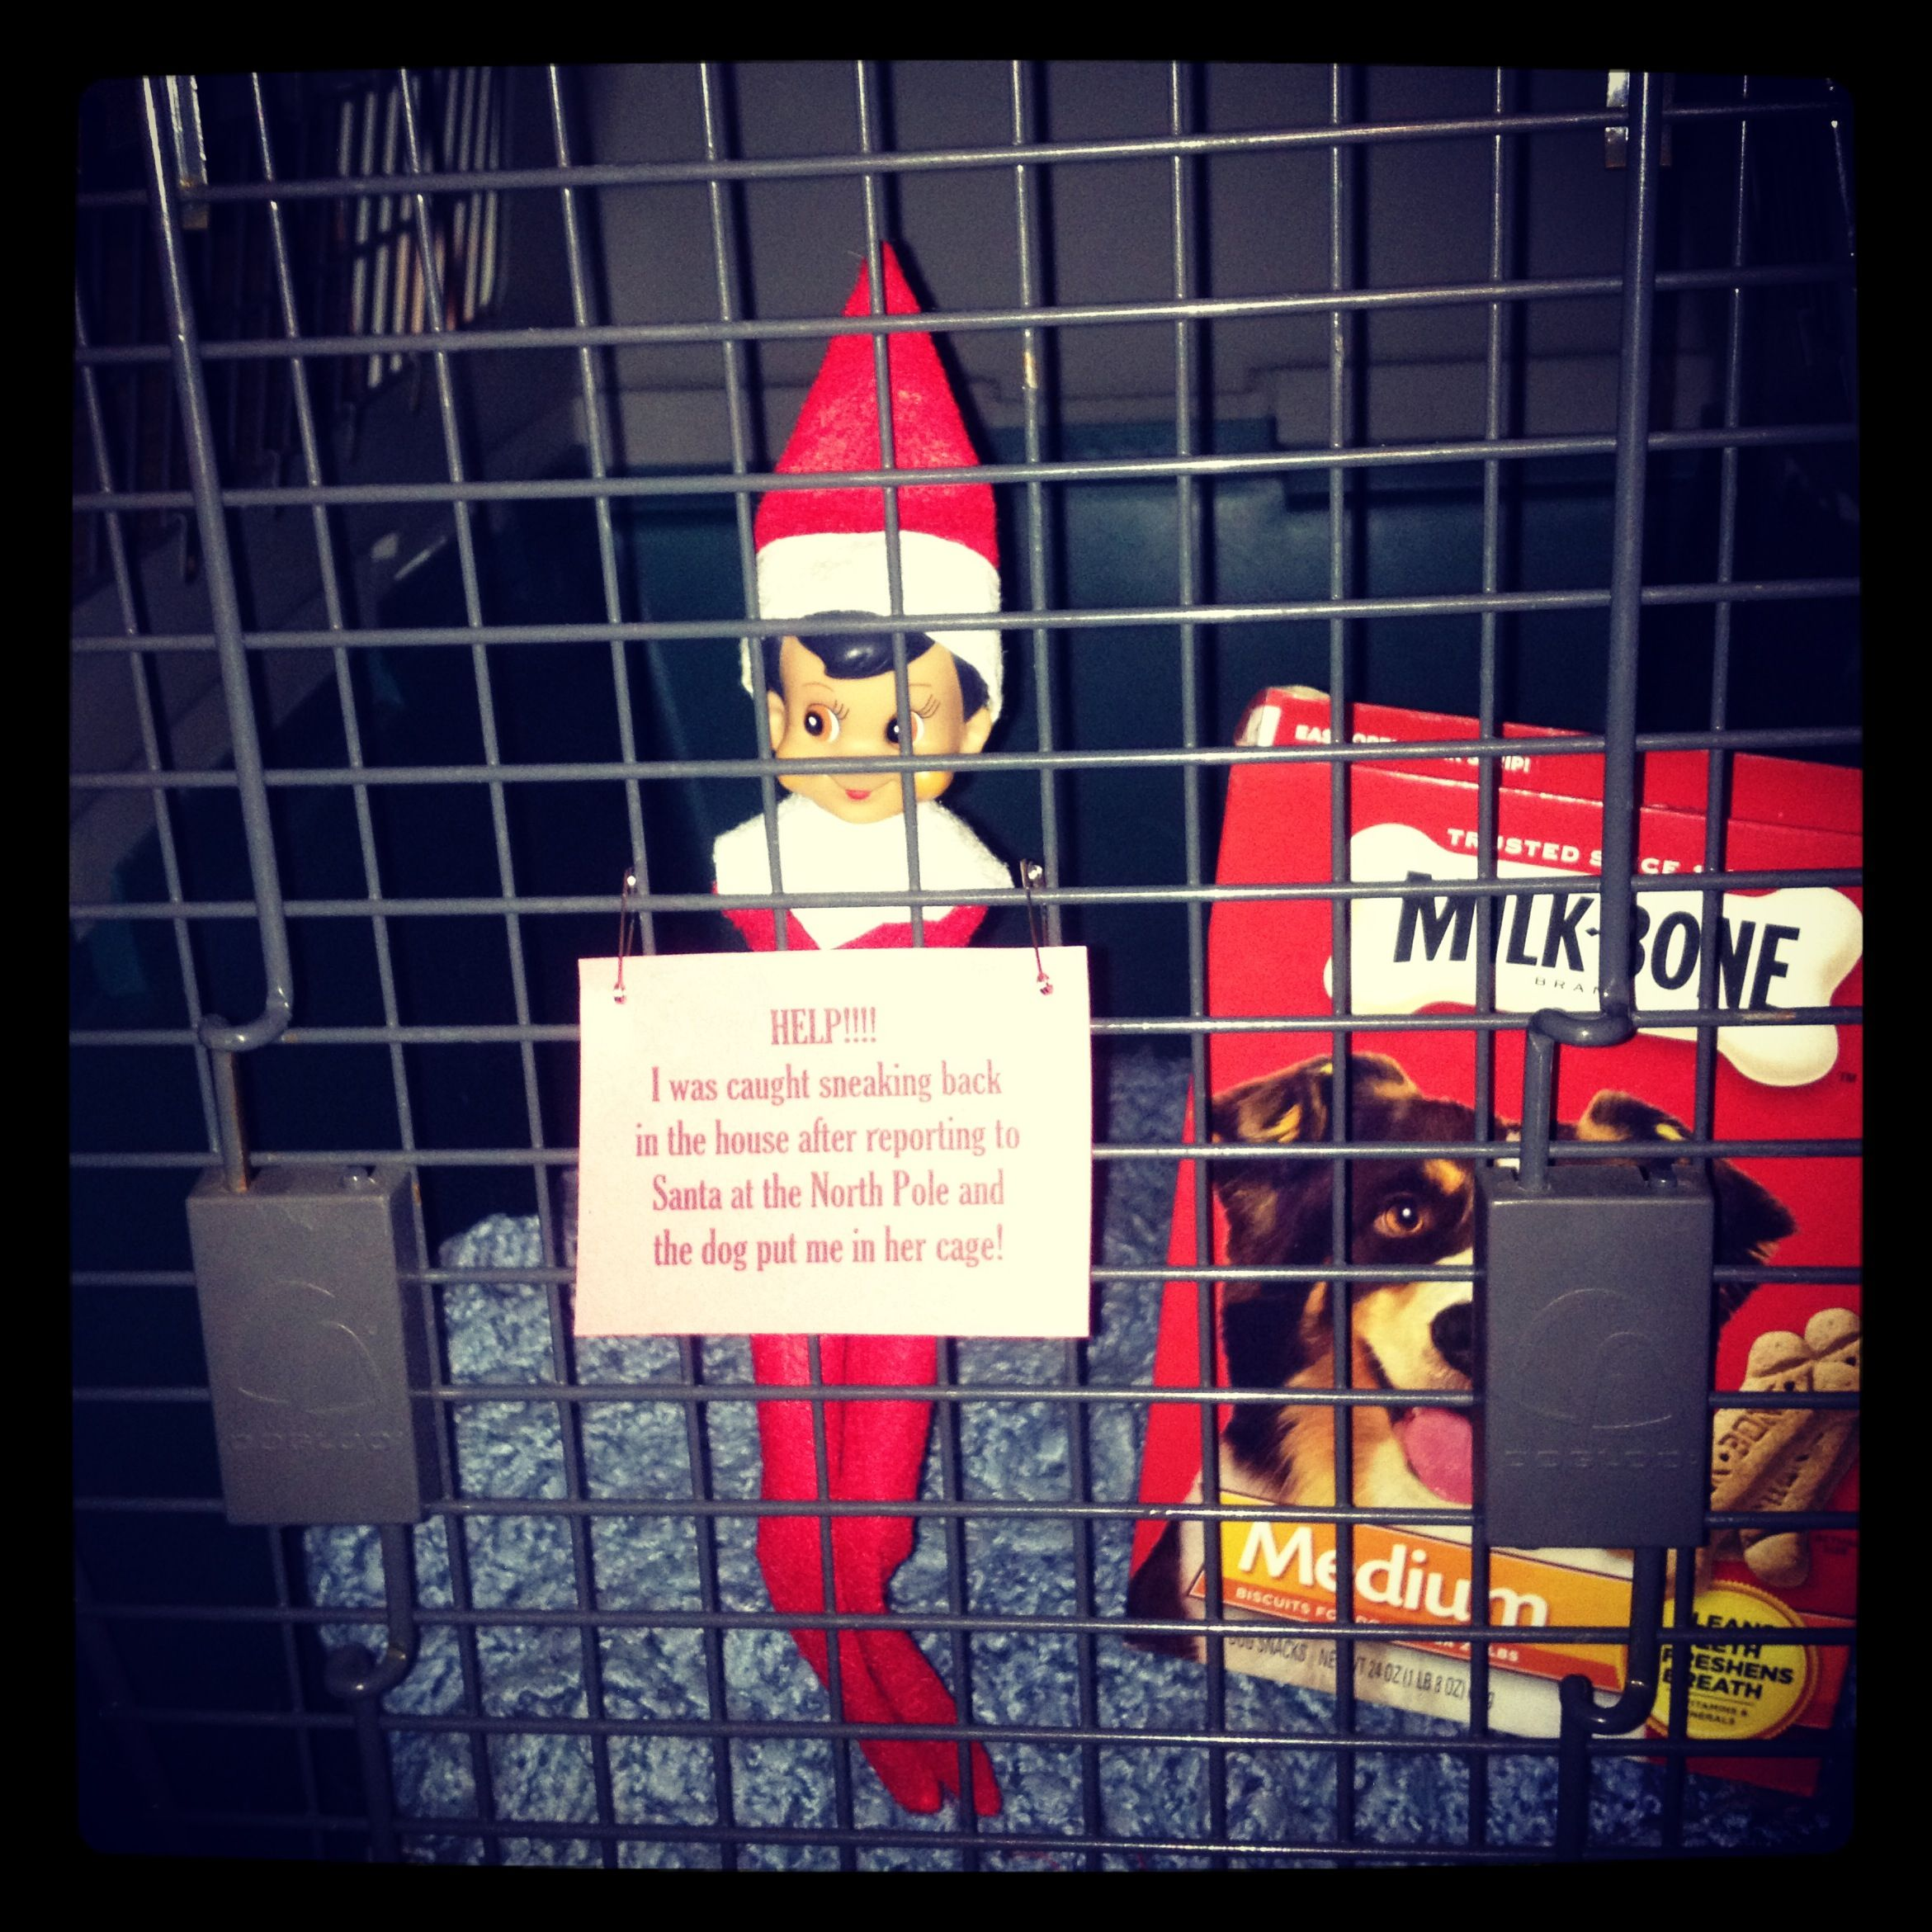 Luke Our Elf On The Shelf Was Caught Sneaking Back Into